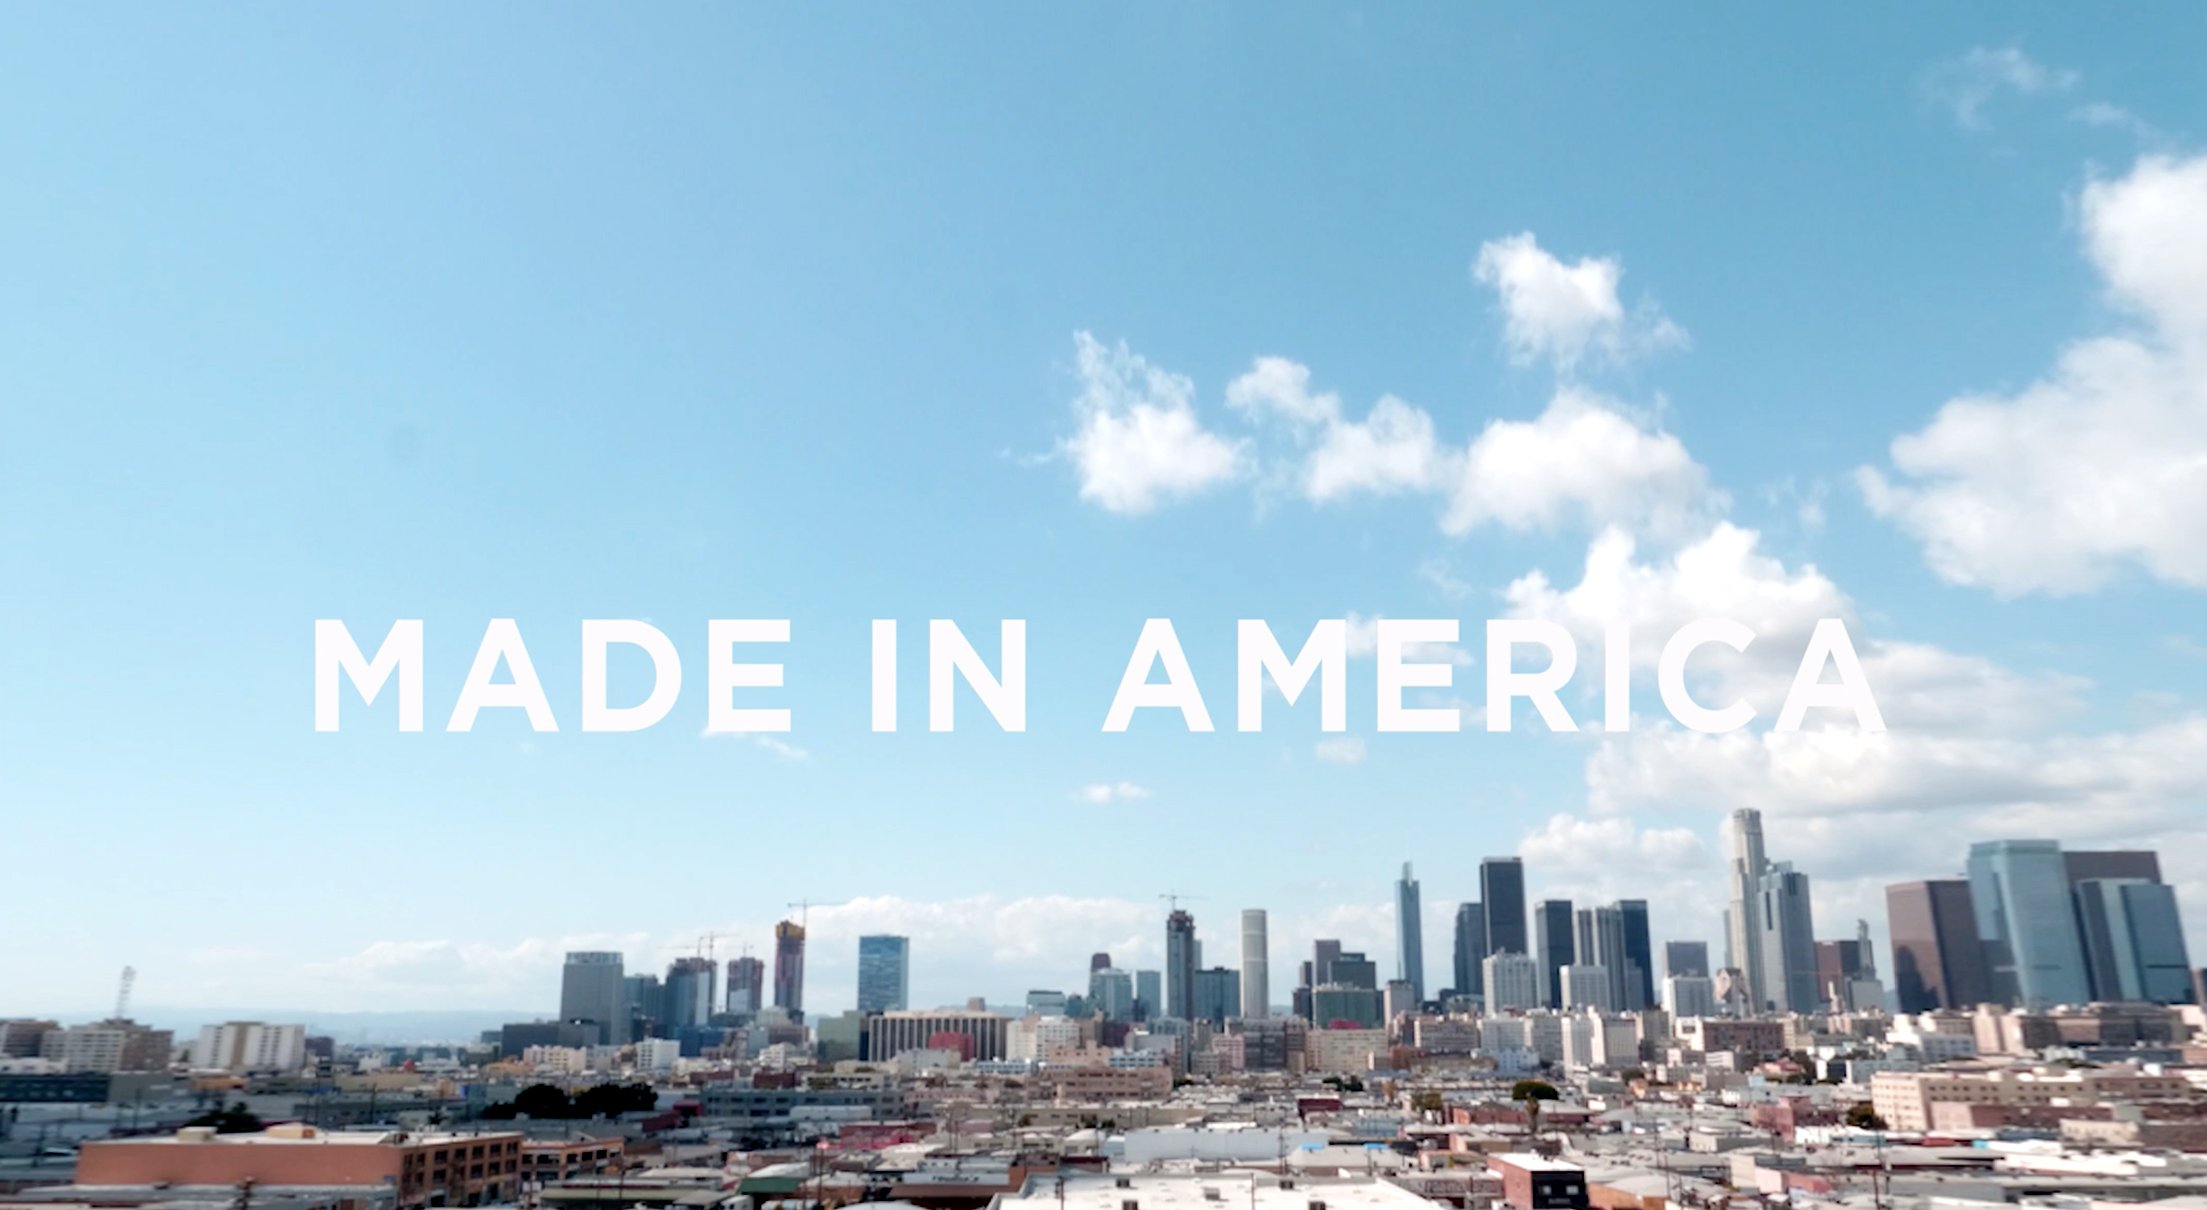 Made in America: The Film